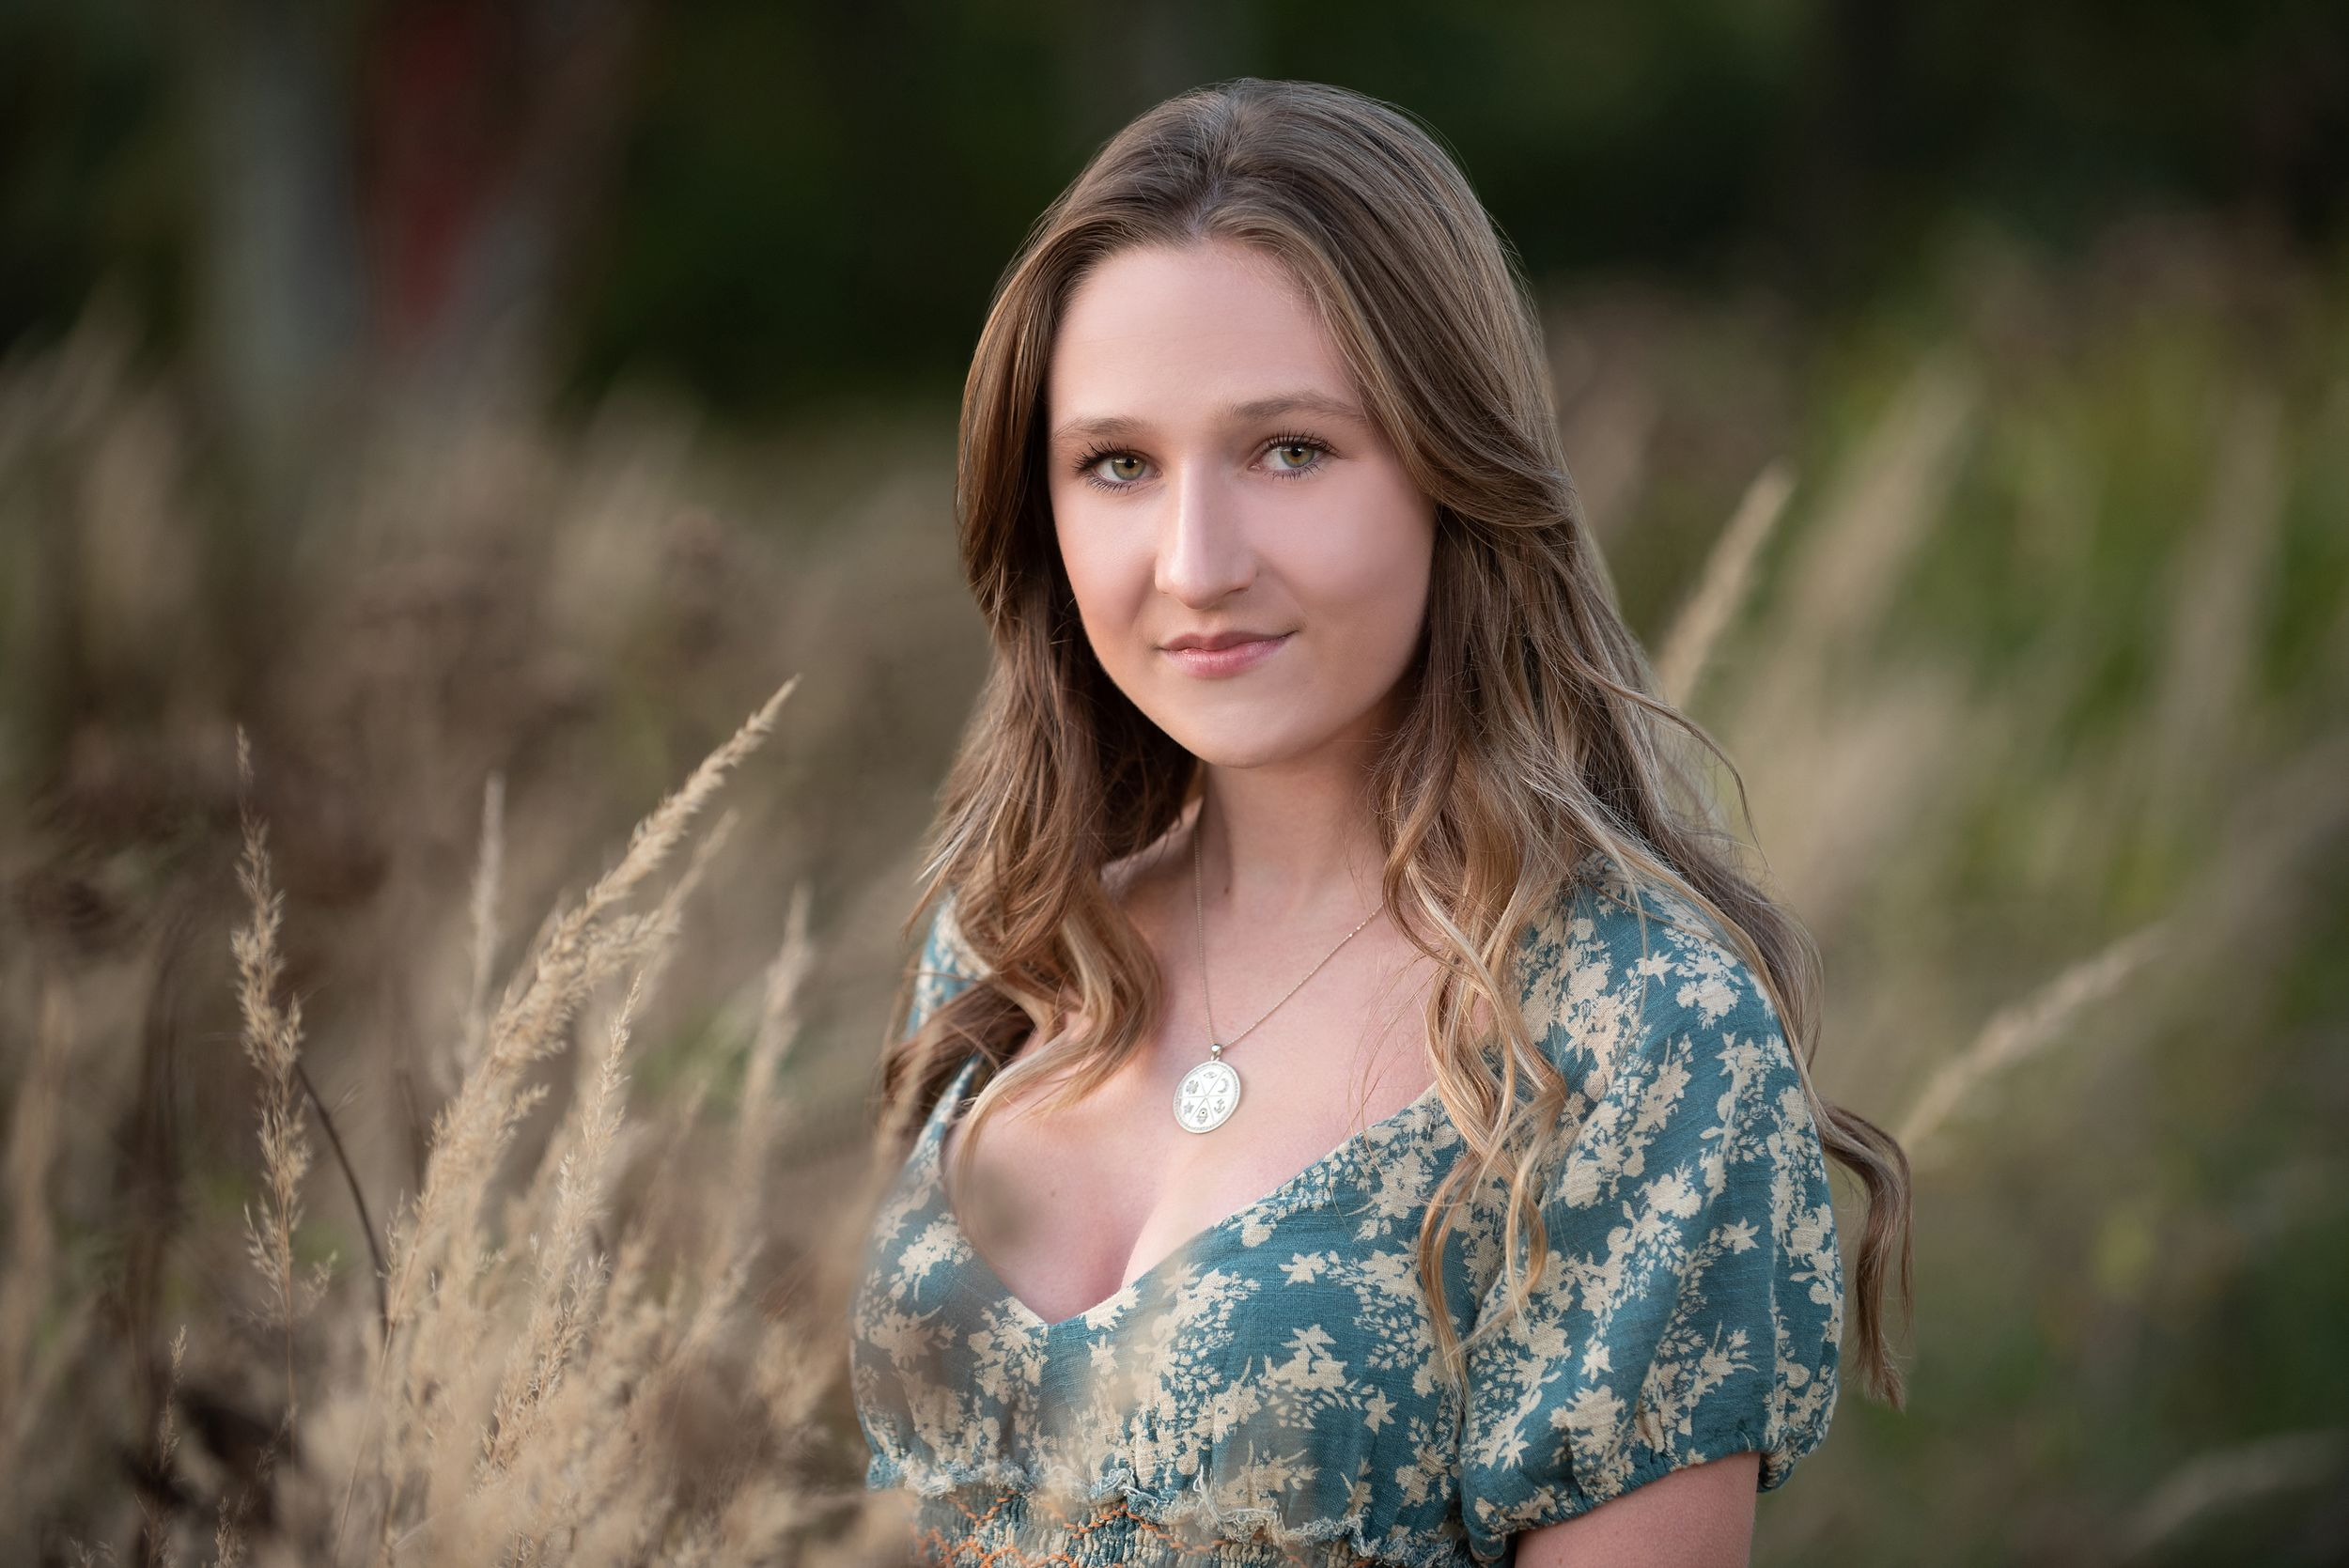 Plymouth North senior portrait by heidi harting photography in Chiltonville, MA